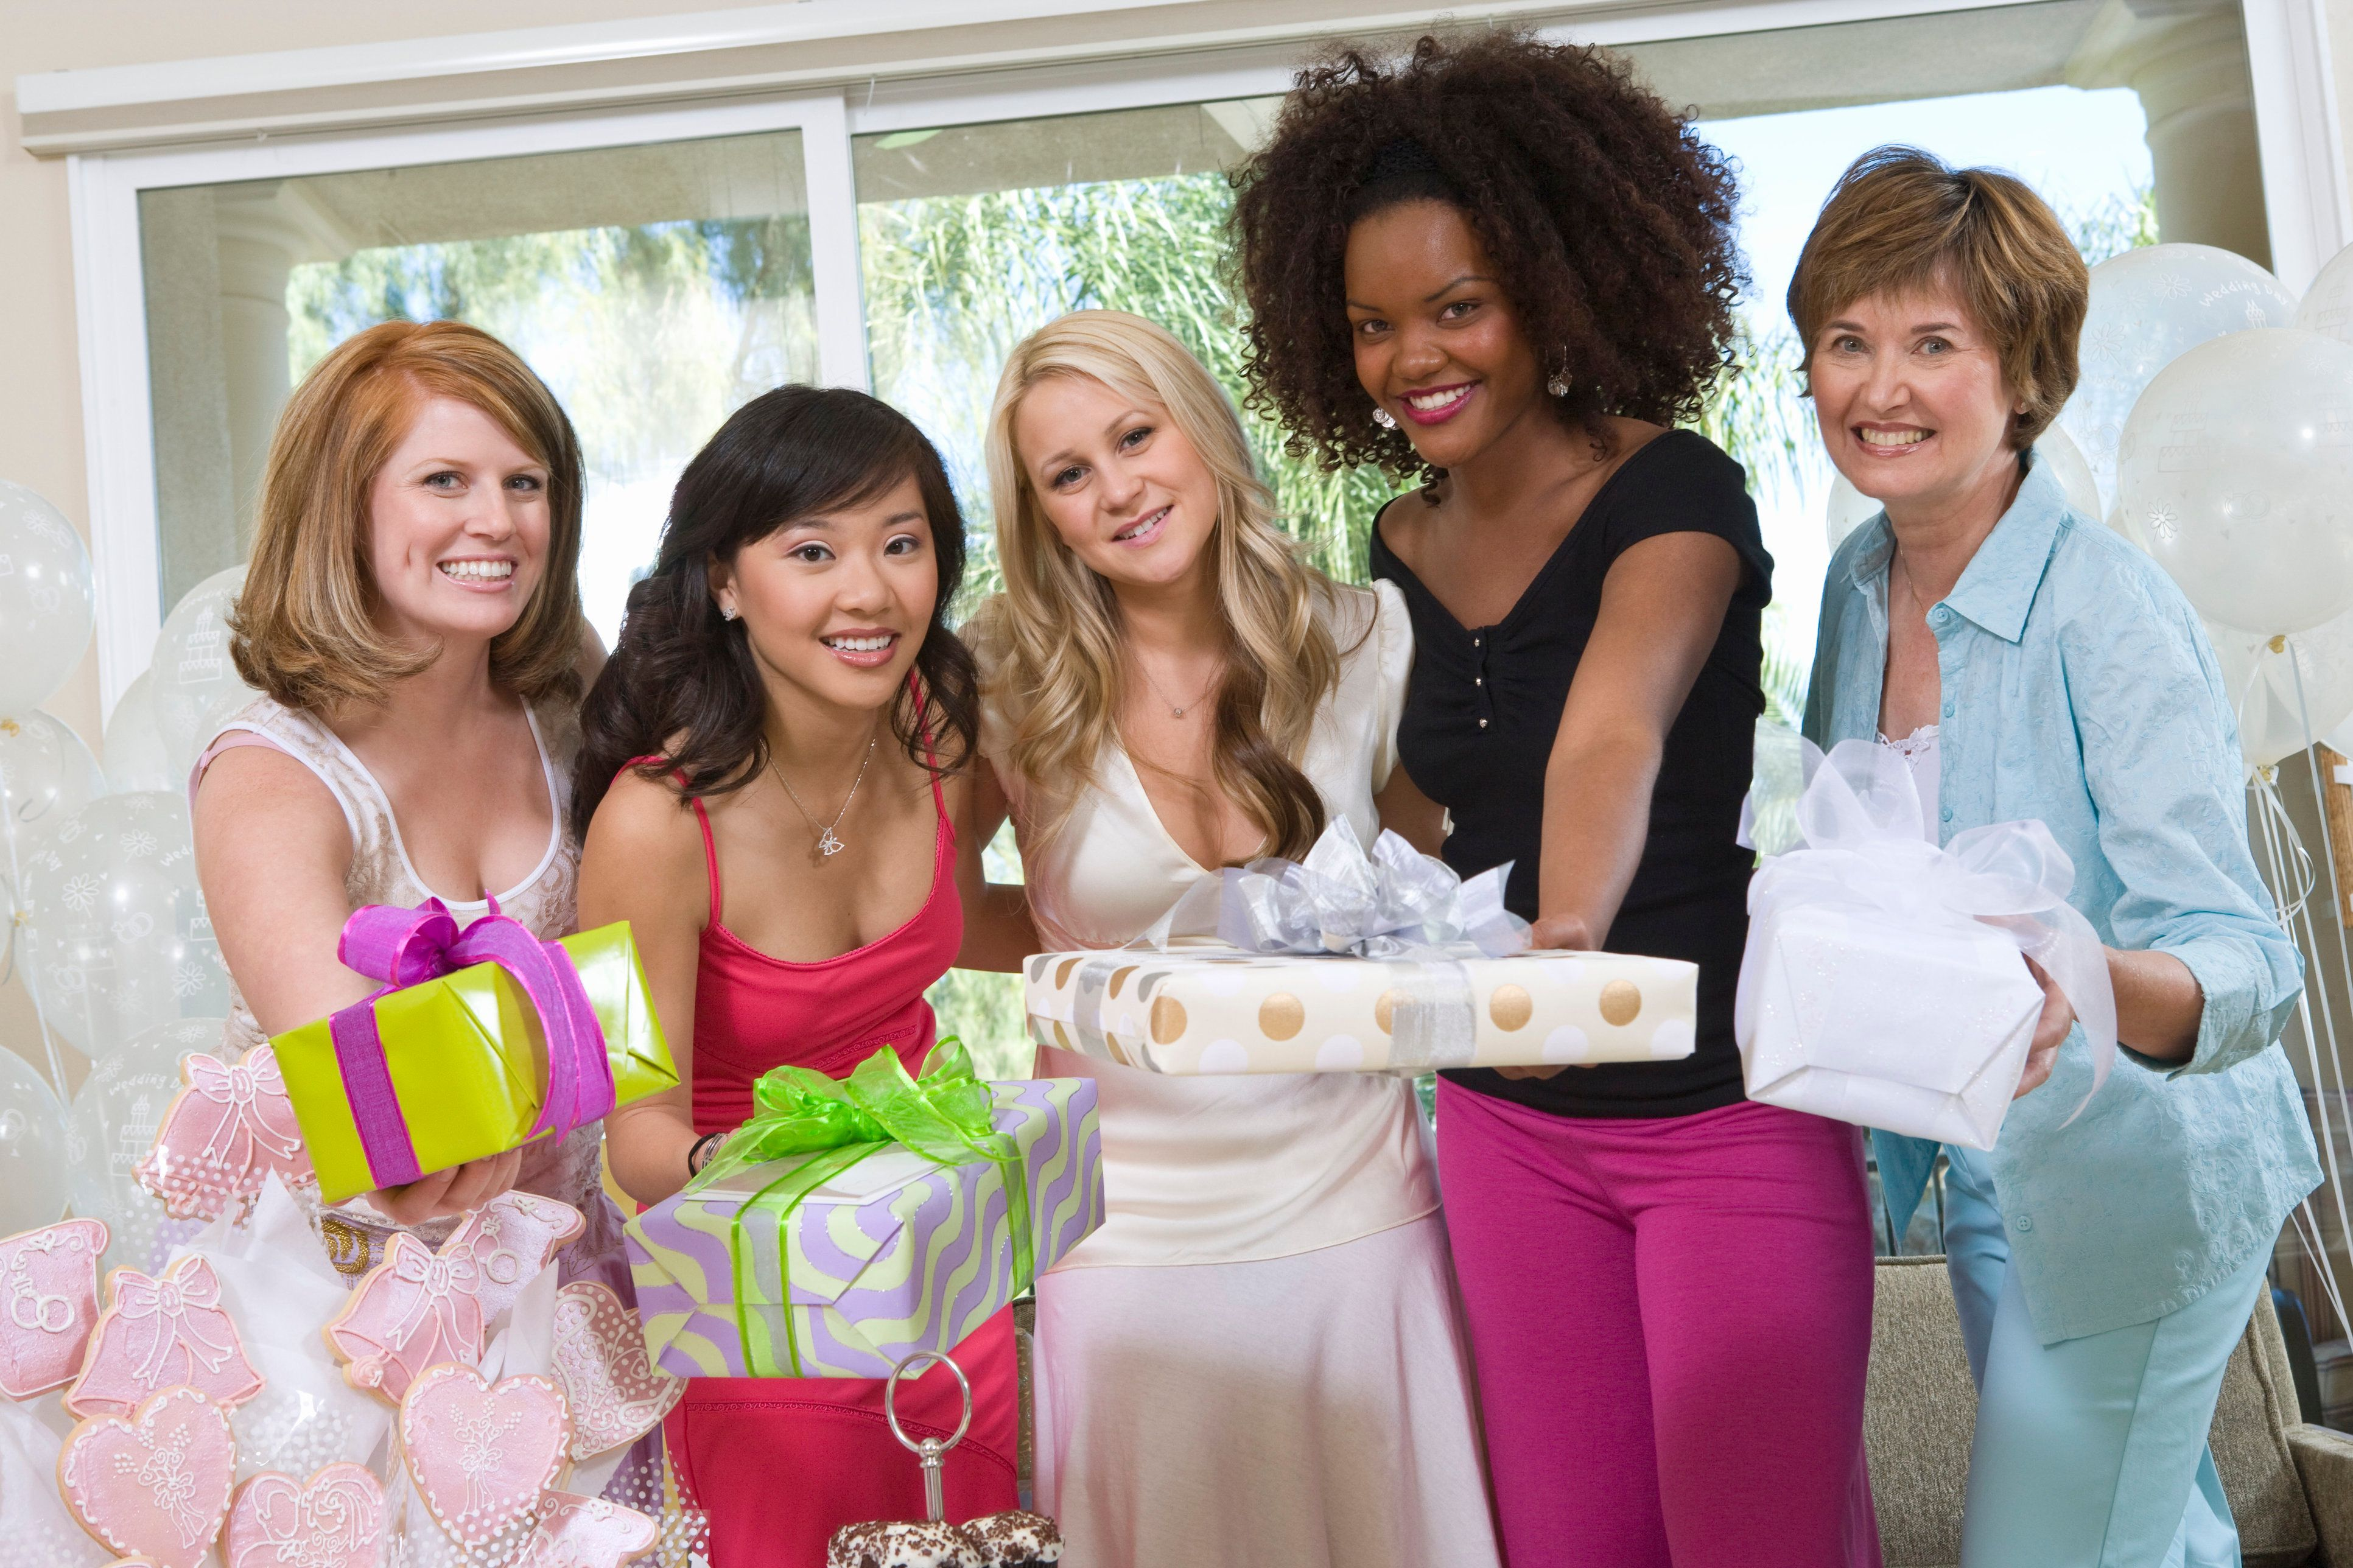 I'm A Bridesmaid. How Much Should I Spend On Wedding Gifts